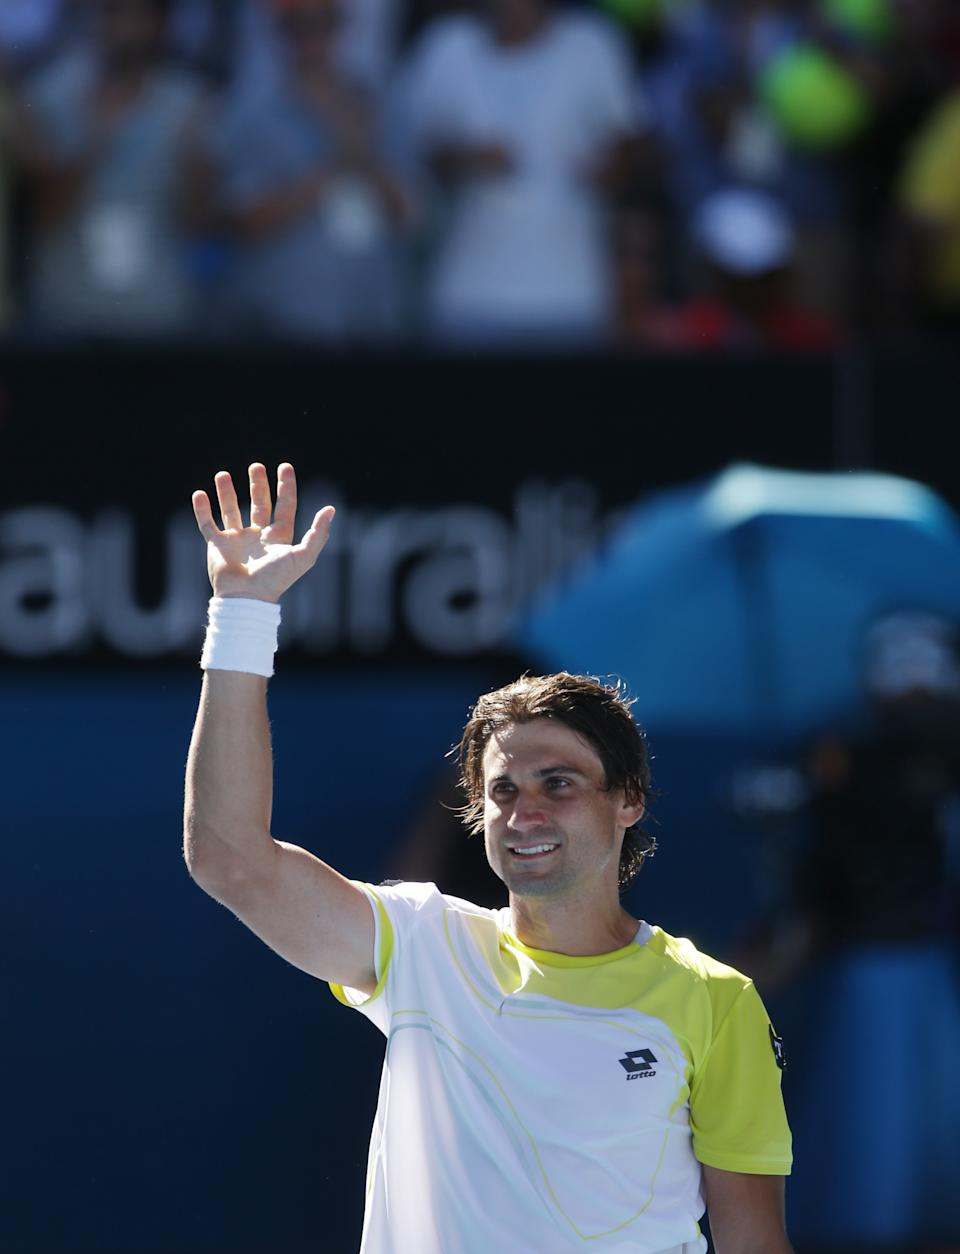 Spain's David Ferrer celebrates after defeating compatriot Nicolas Almagro in their quarterfinal match at the Australian Open tennis championship in Melbourne, Australia, Tuesday, Jan. 22, 2013. (AP Photo/Dita Alangkara)